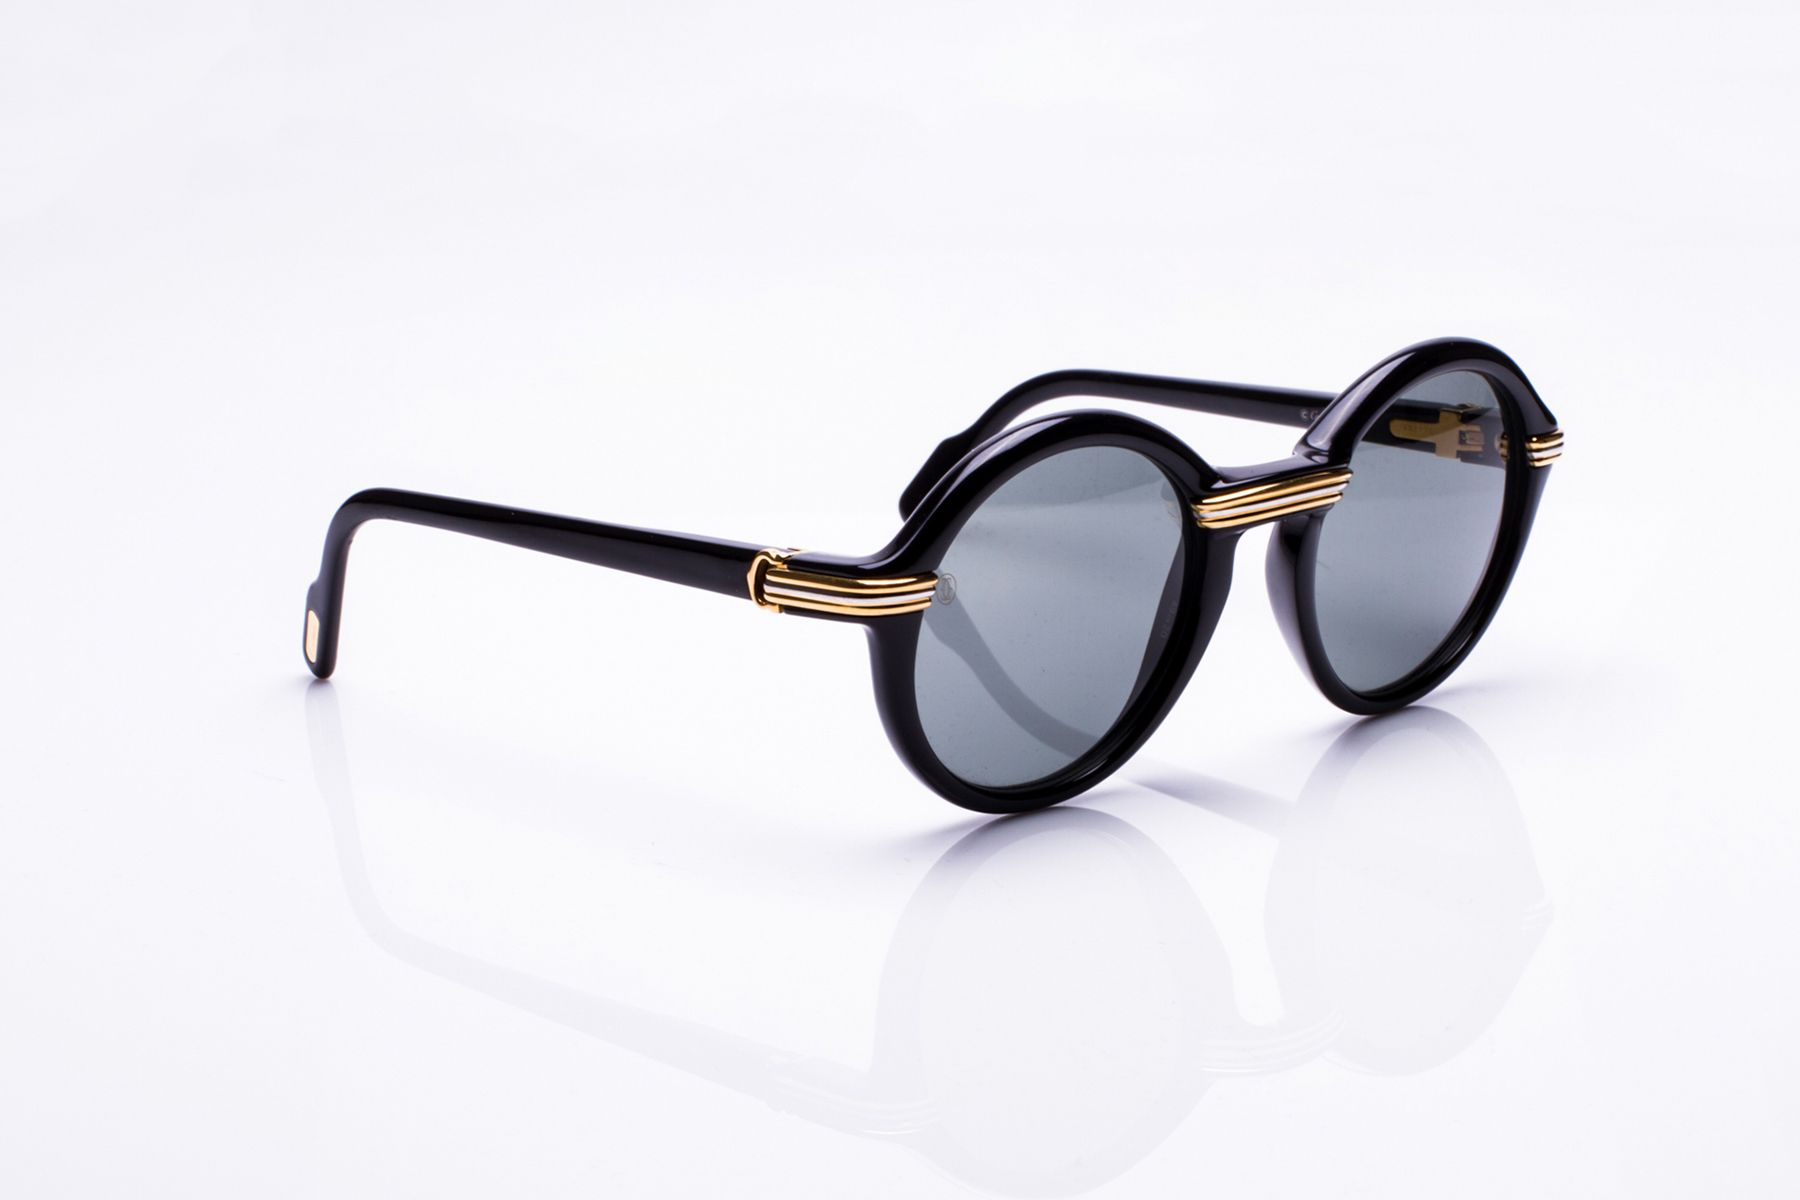 acf76172e751 Here s 17 Vintage Frames Streetwear Brands Try to Imitate